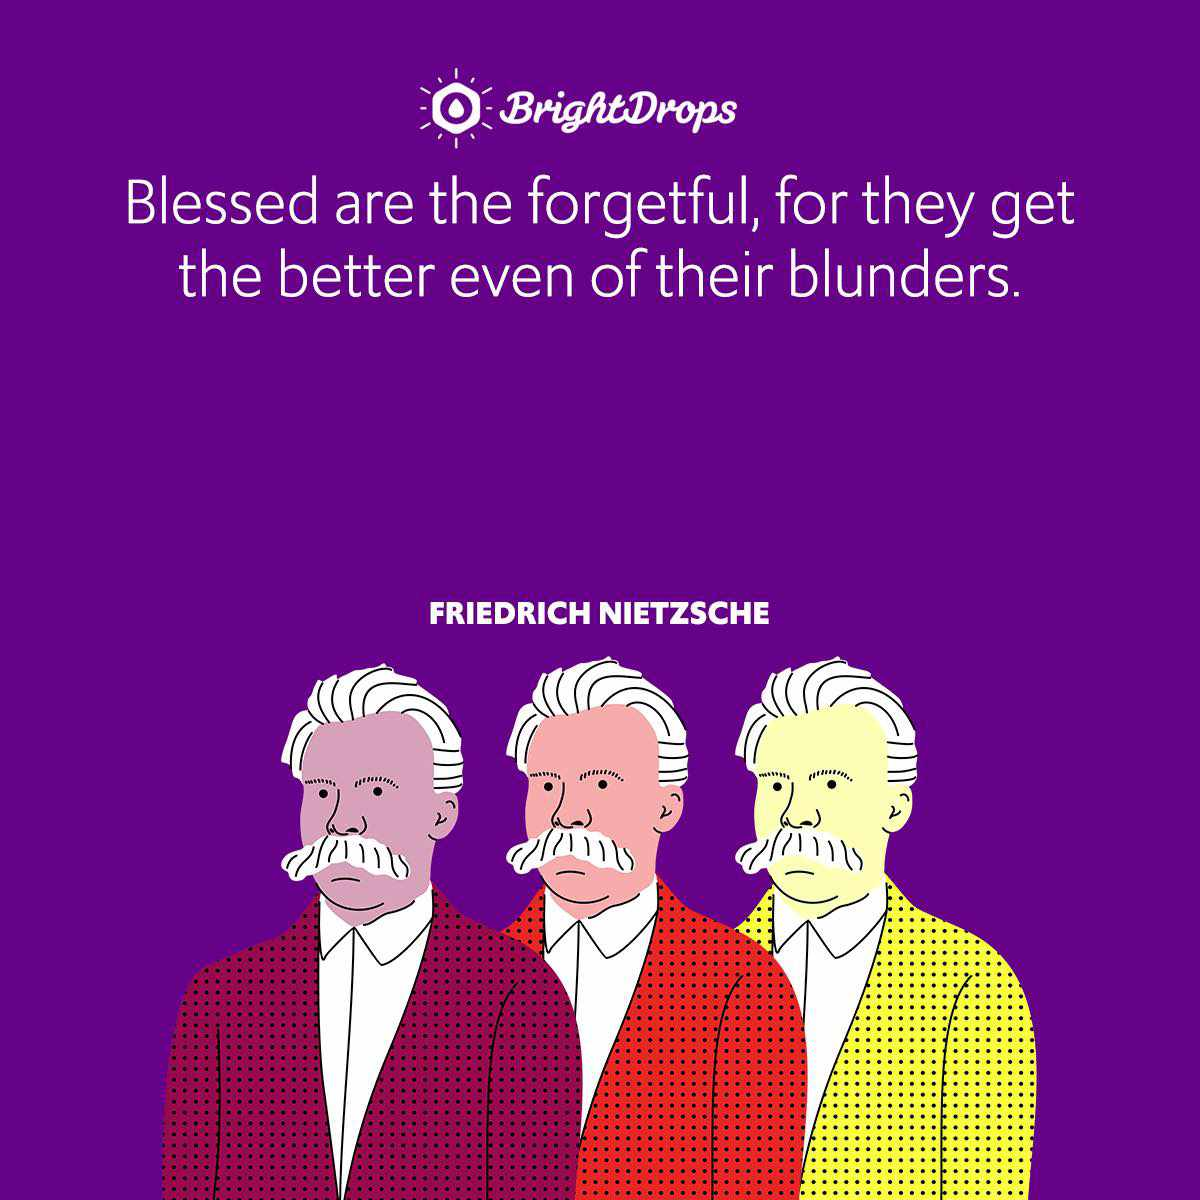 Blessed are the forgetful, for they get the better even of their blunders.